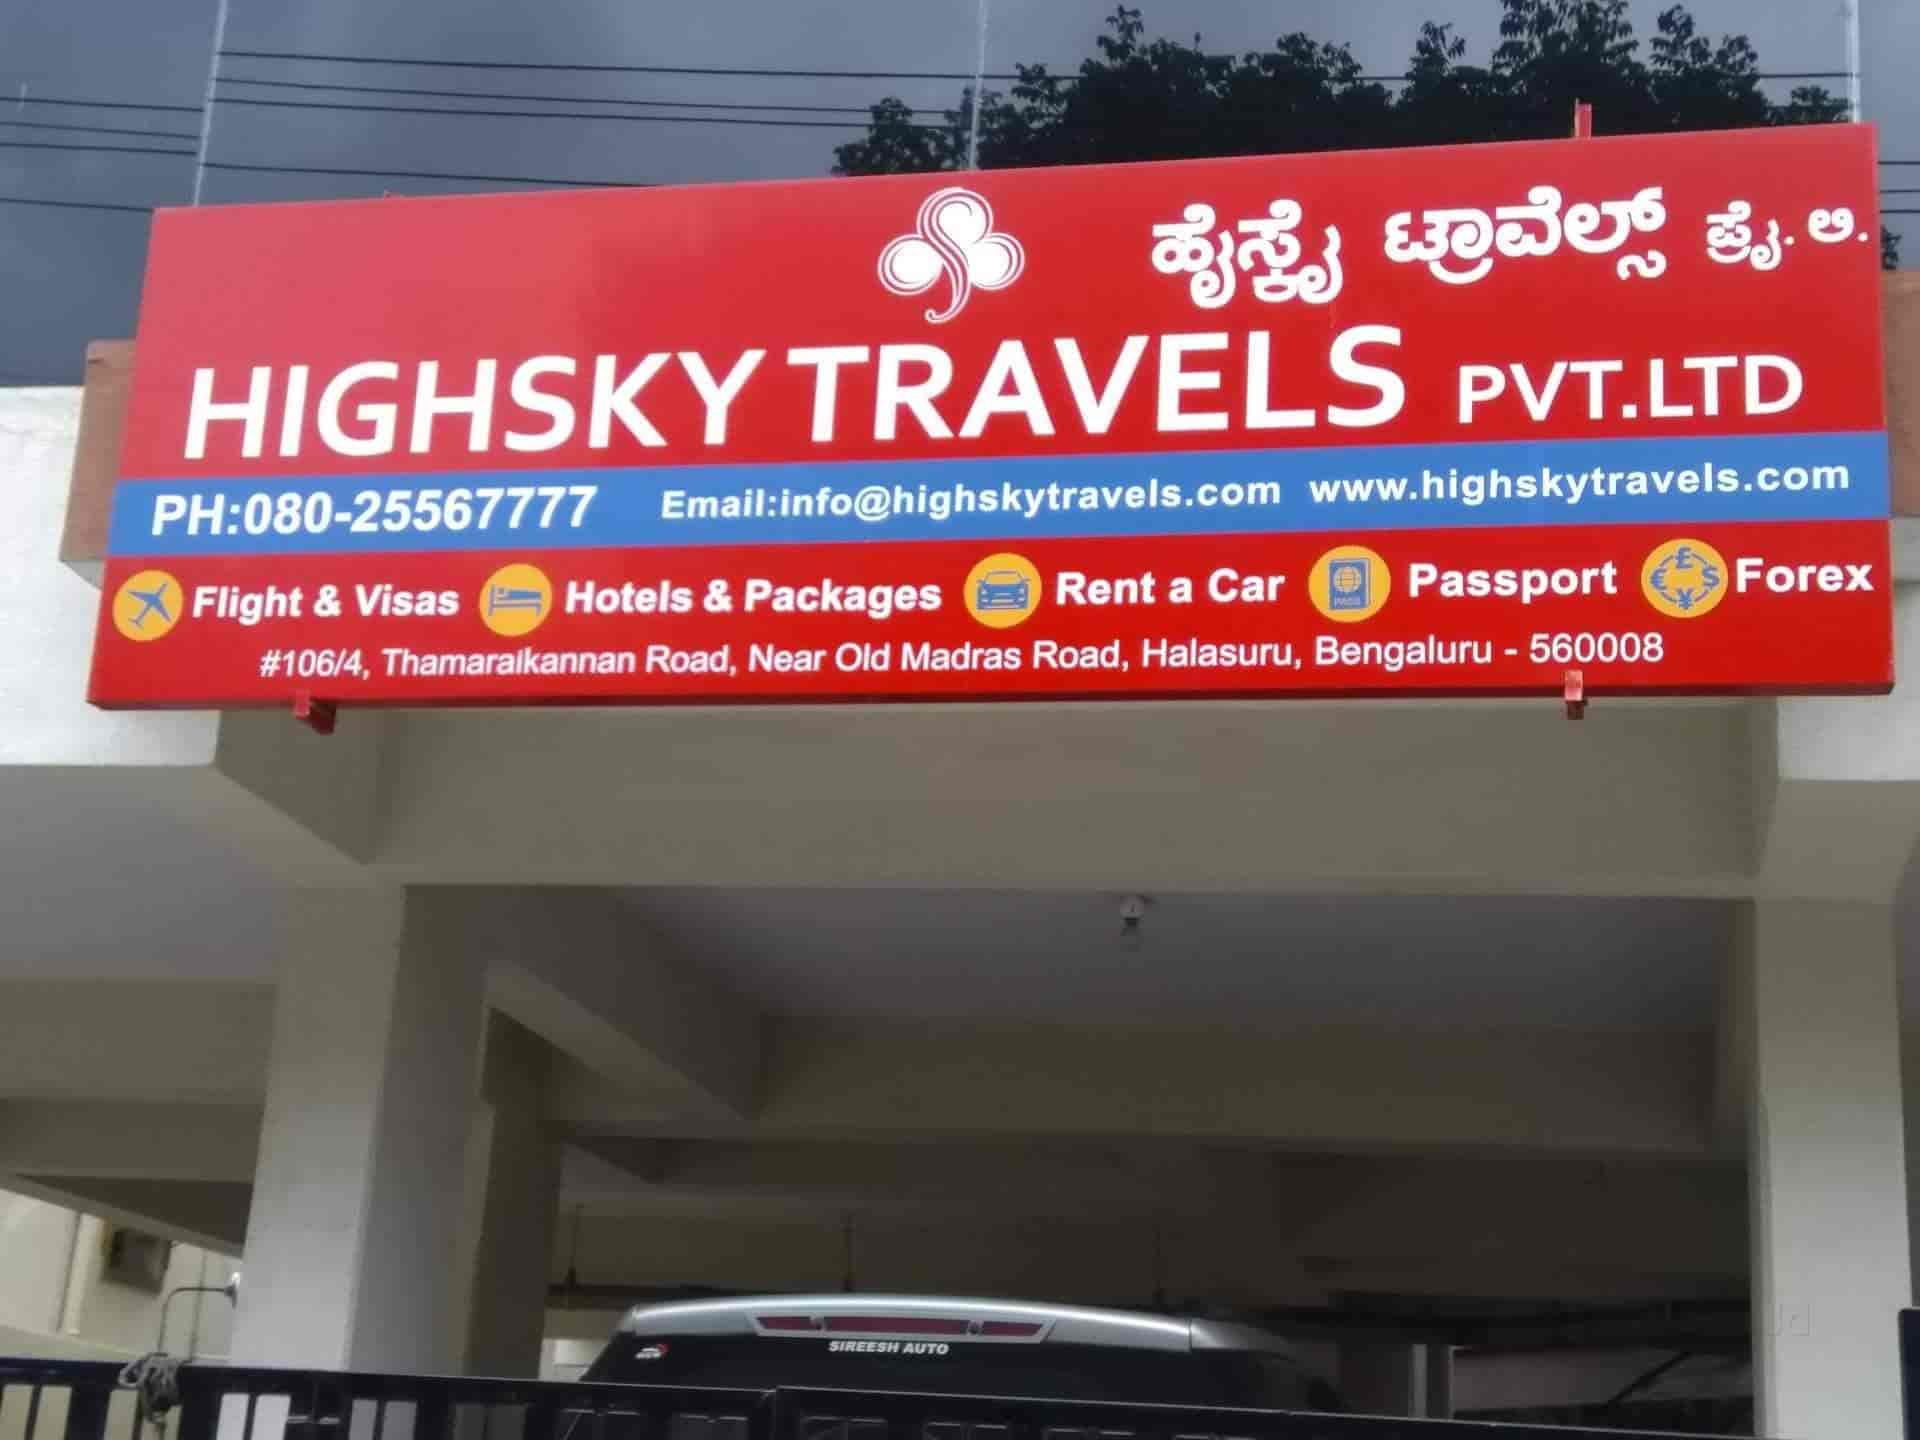 Highsky Travels Pvt Ltd Ulsoor Travel Agents In Bangalore Justdial